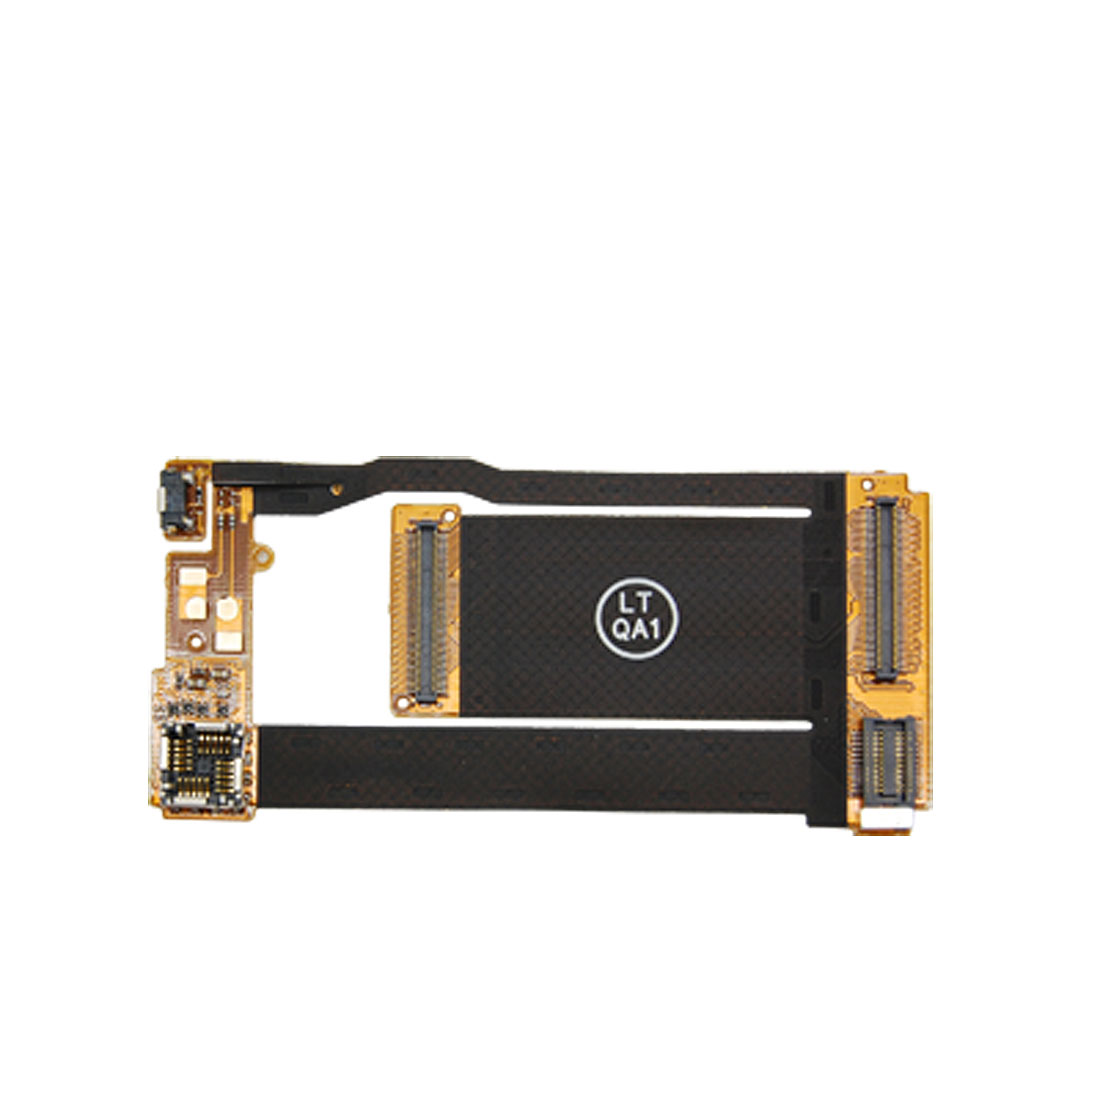 LCD Flex Ribbon Cable Connector for Nokia 6280